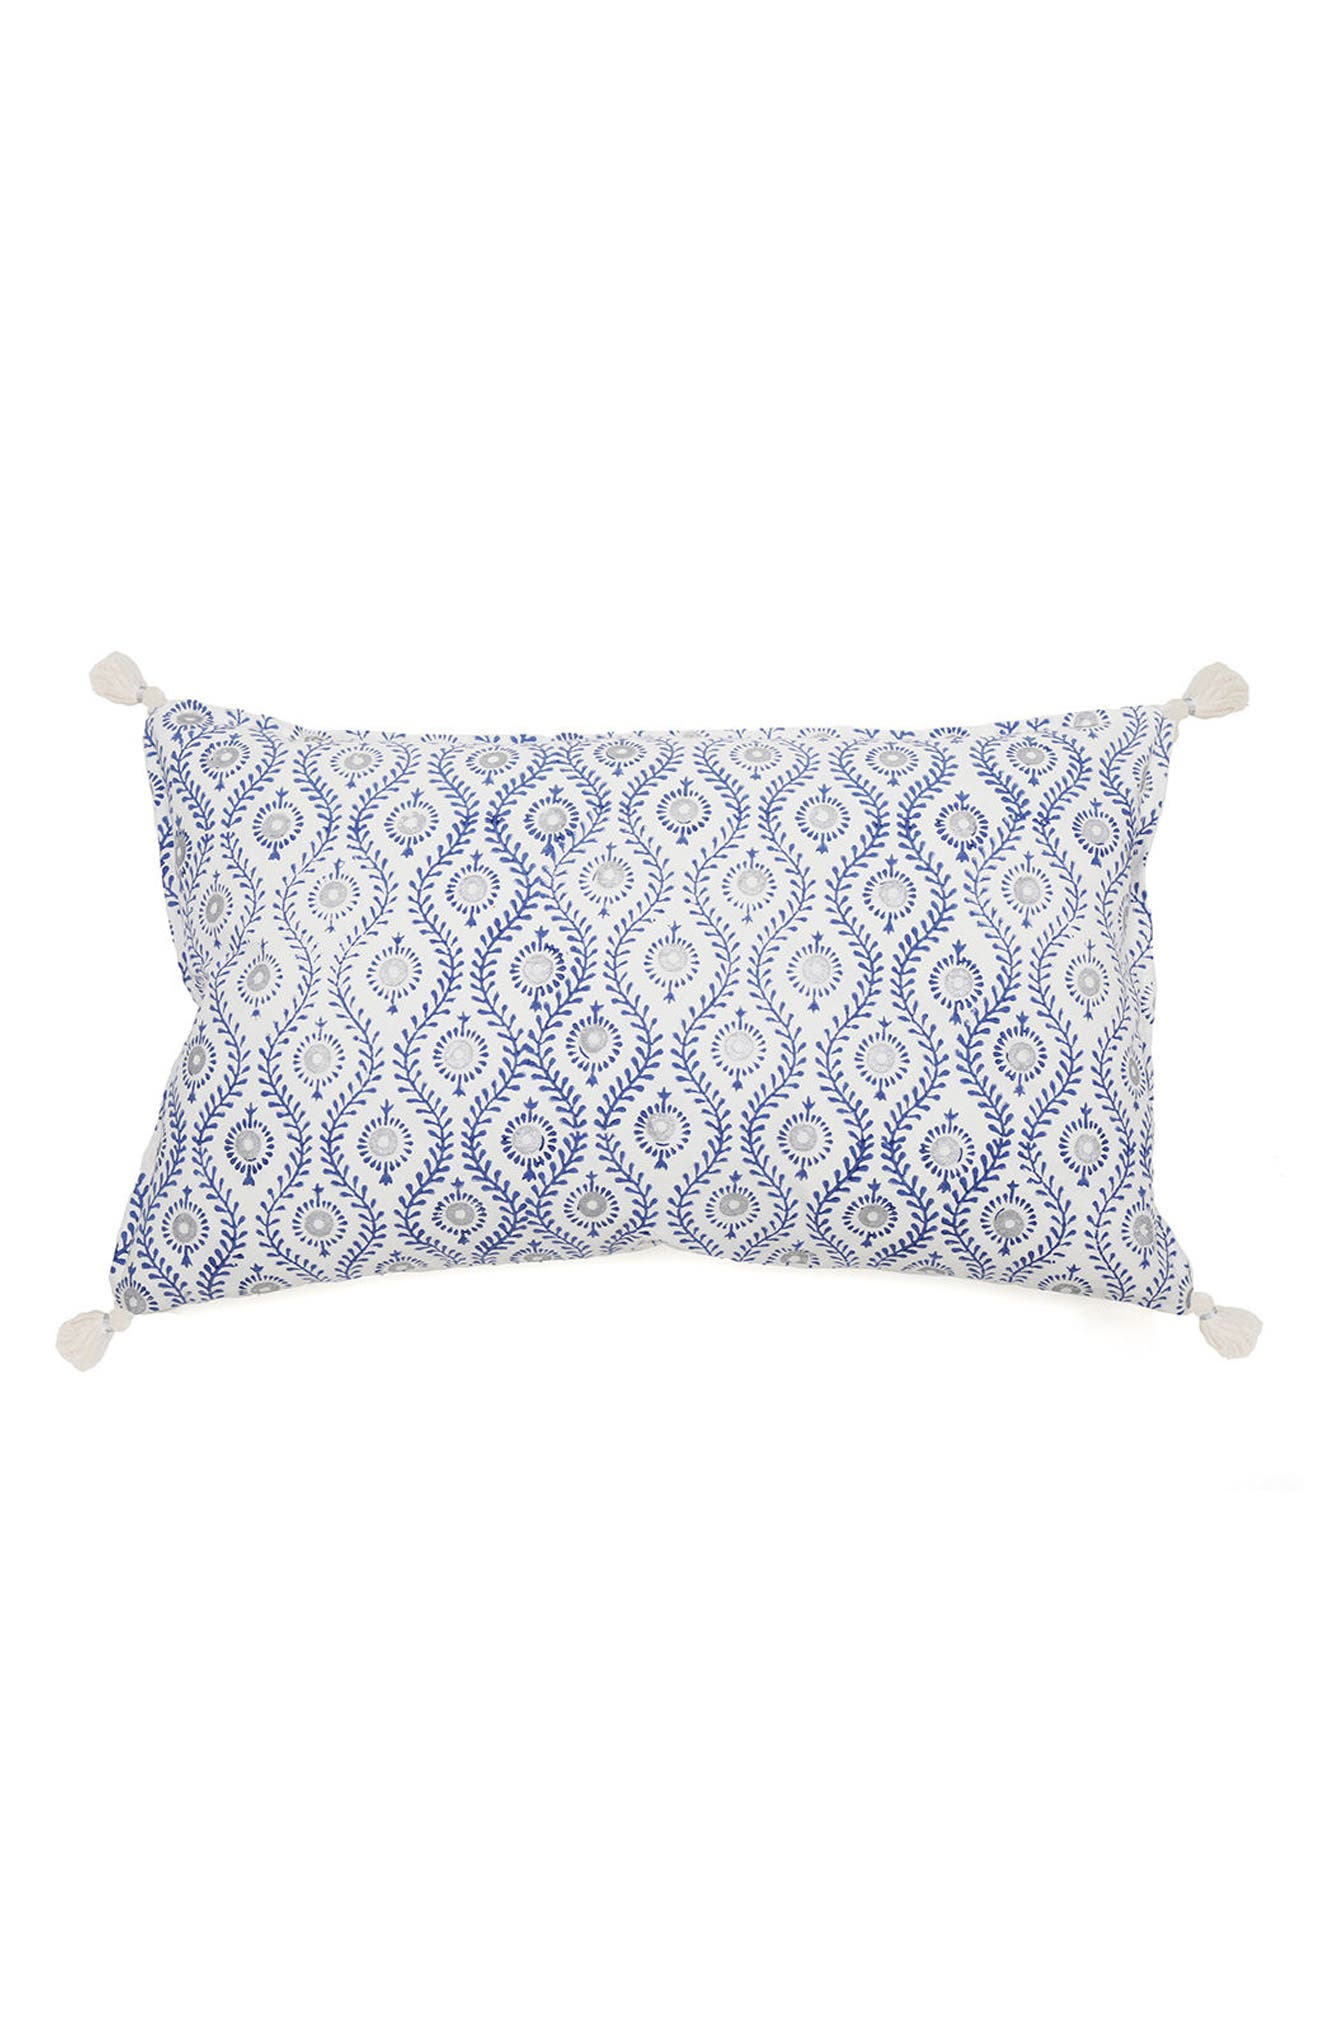 Main Image - Pom Pom at Home Dali Accent Pillow